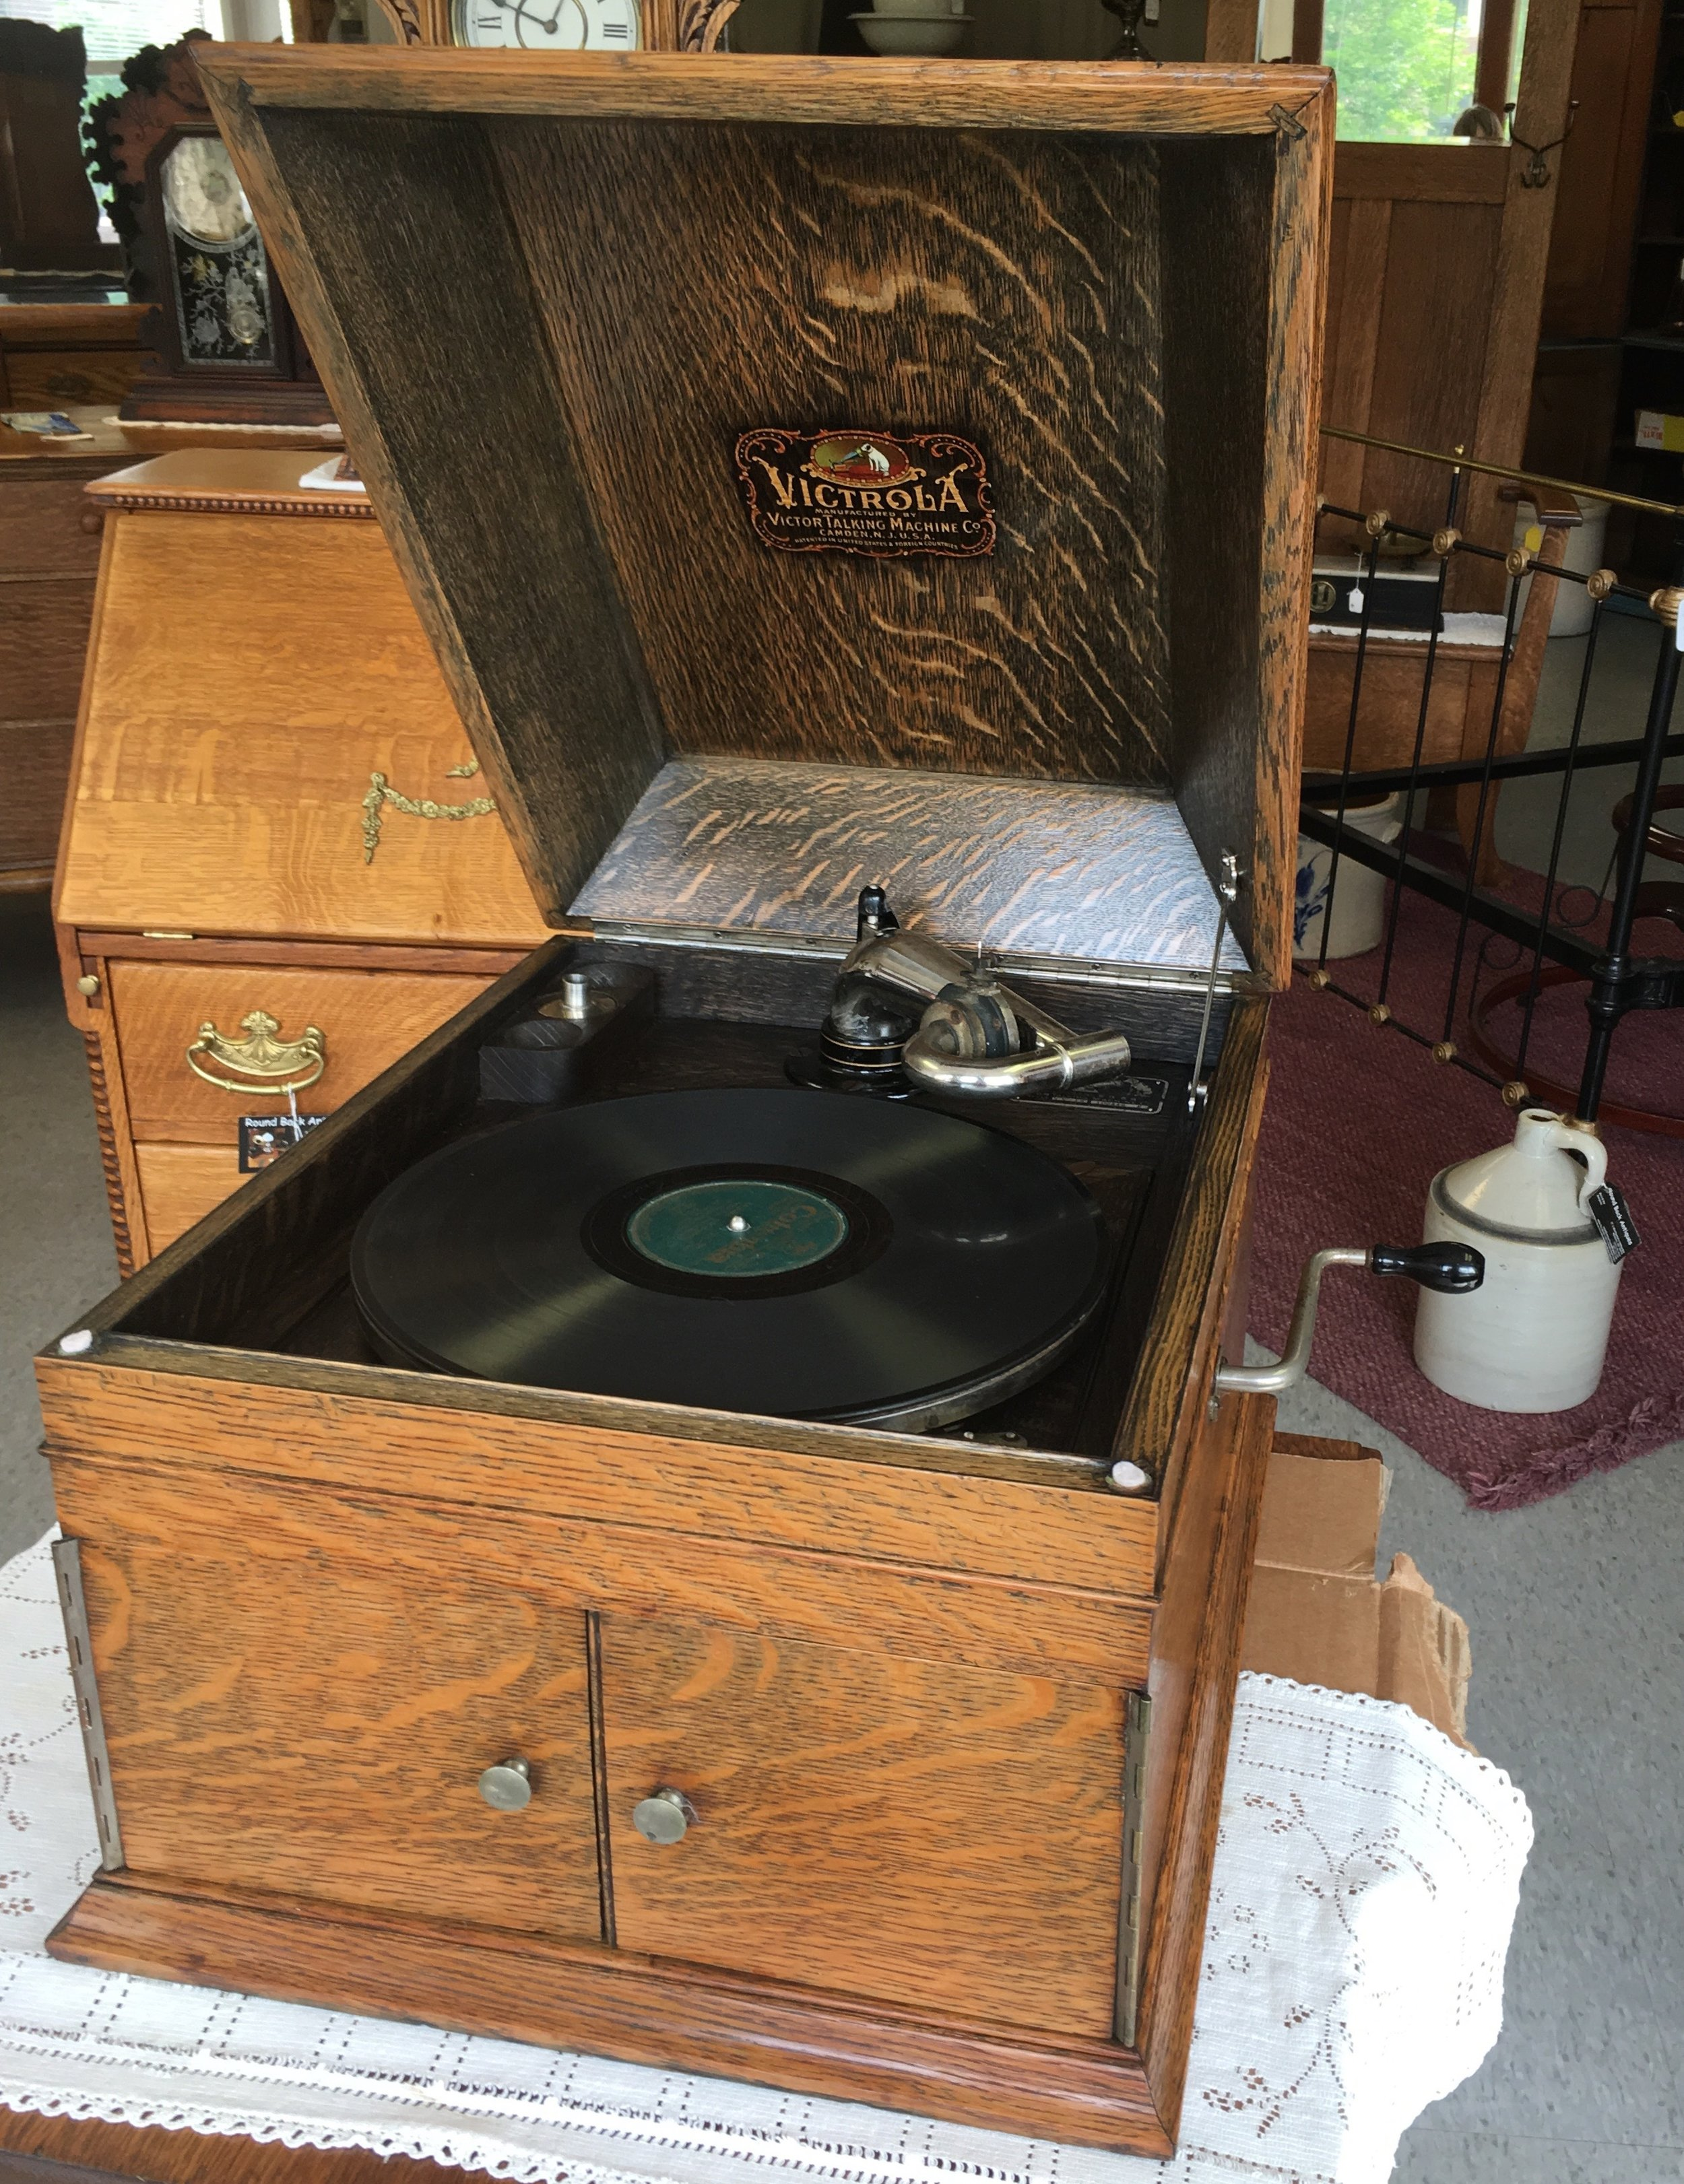 Early Victor Talking Machine with hood. Very attractive oak wood cabinet.